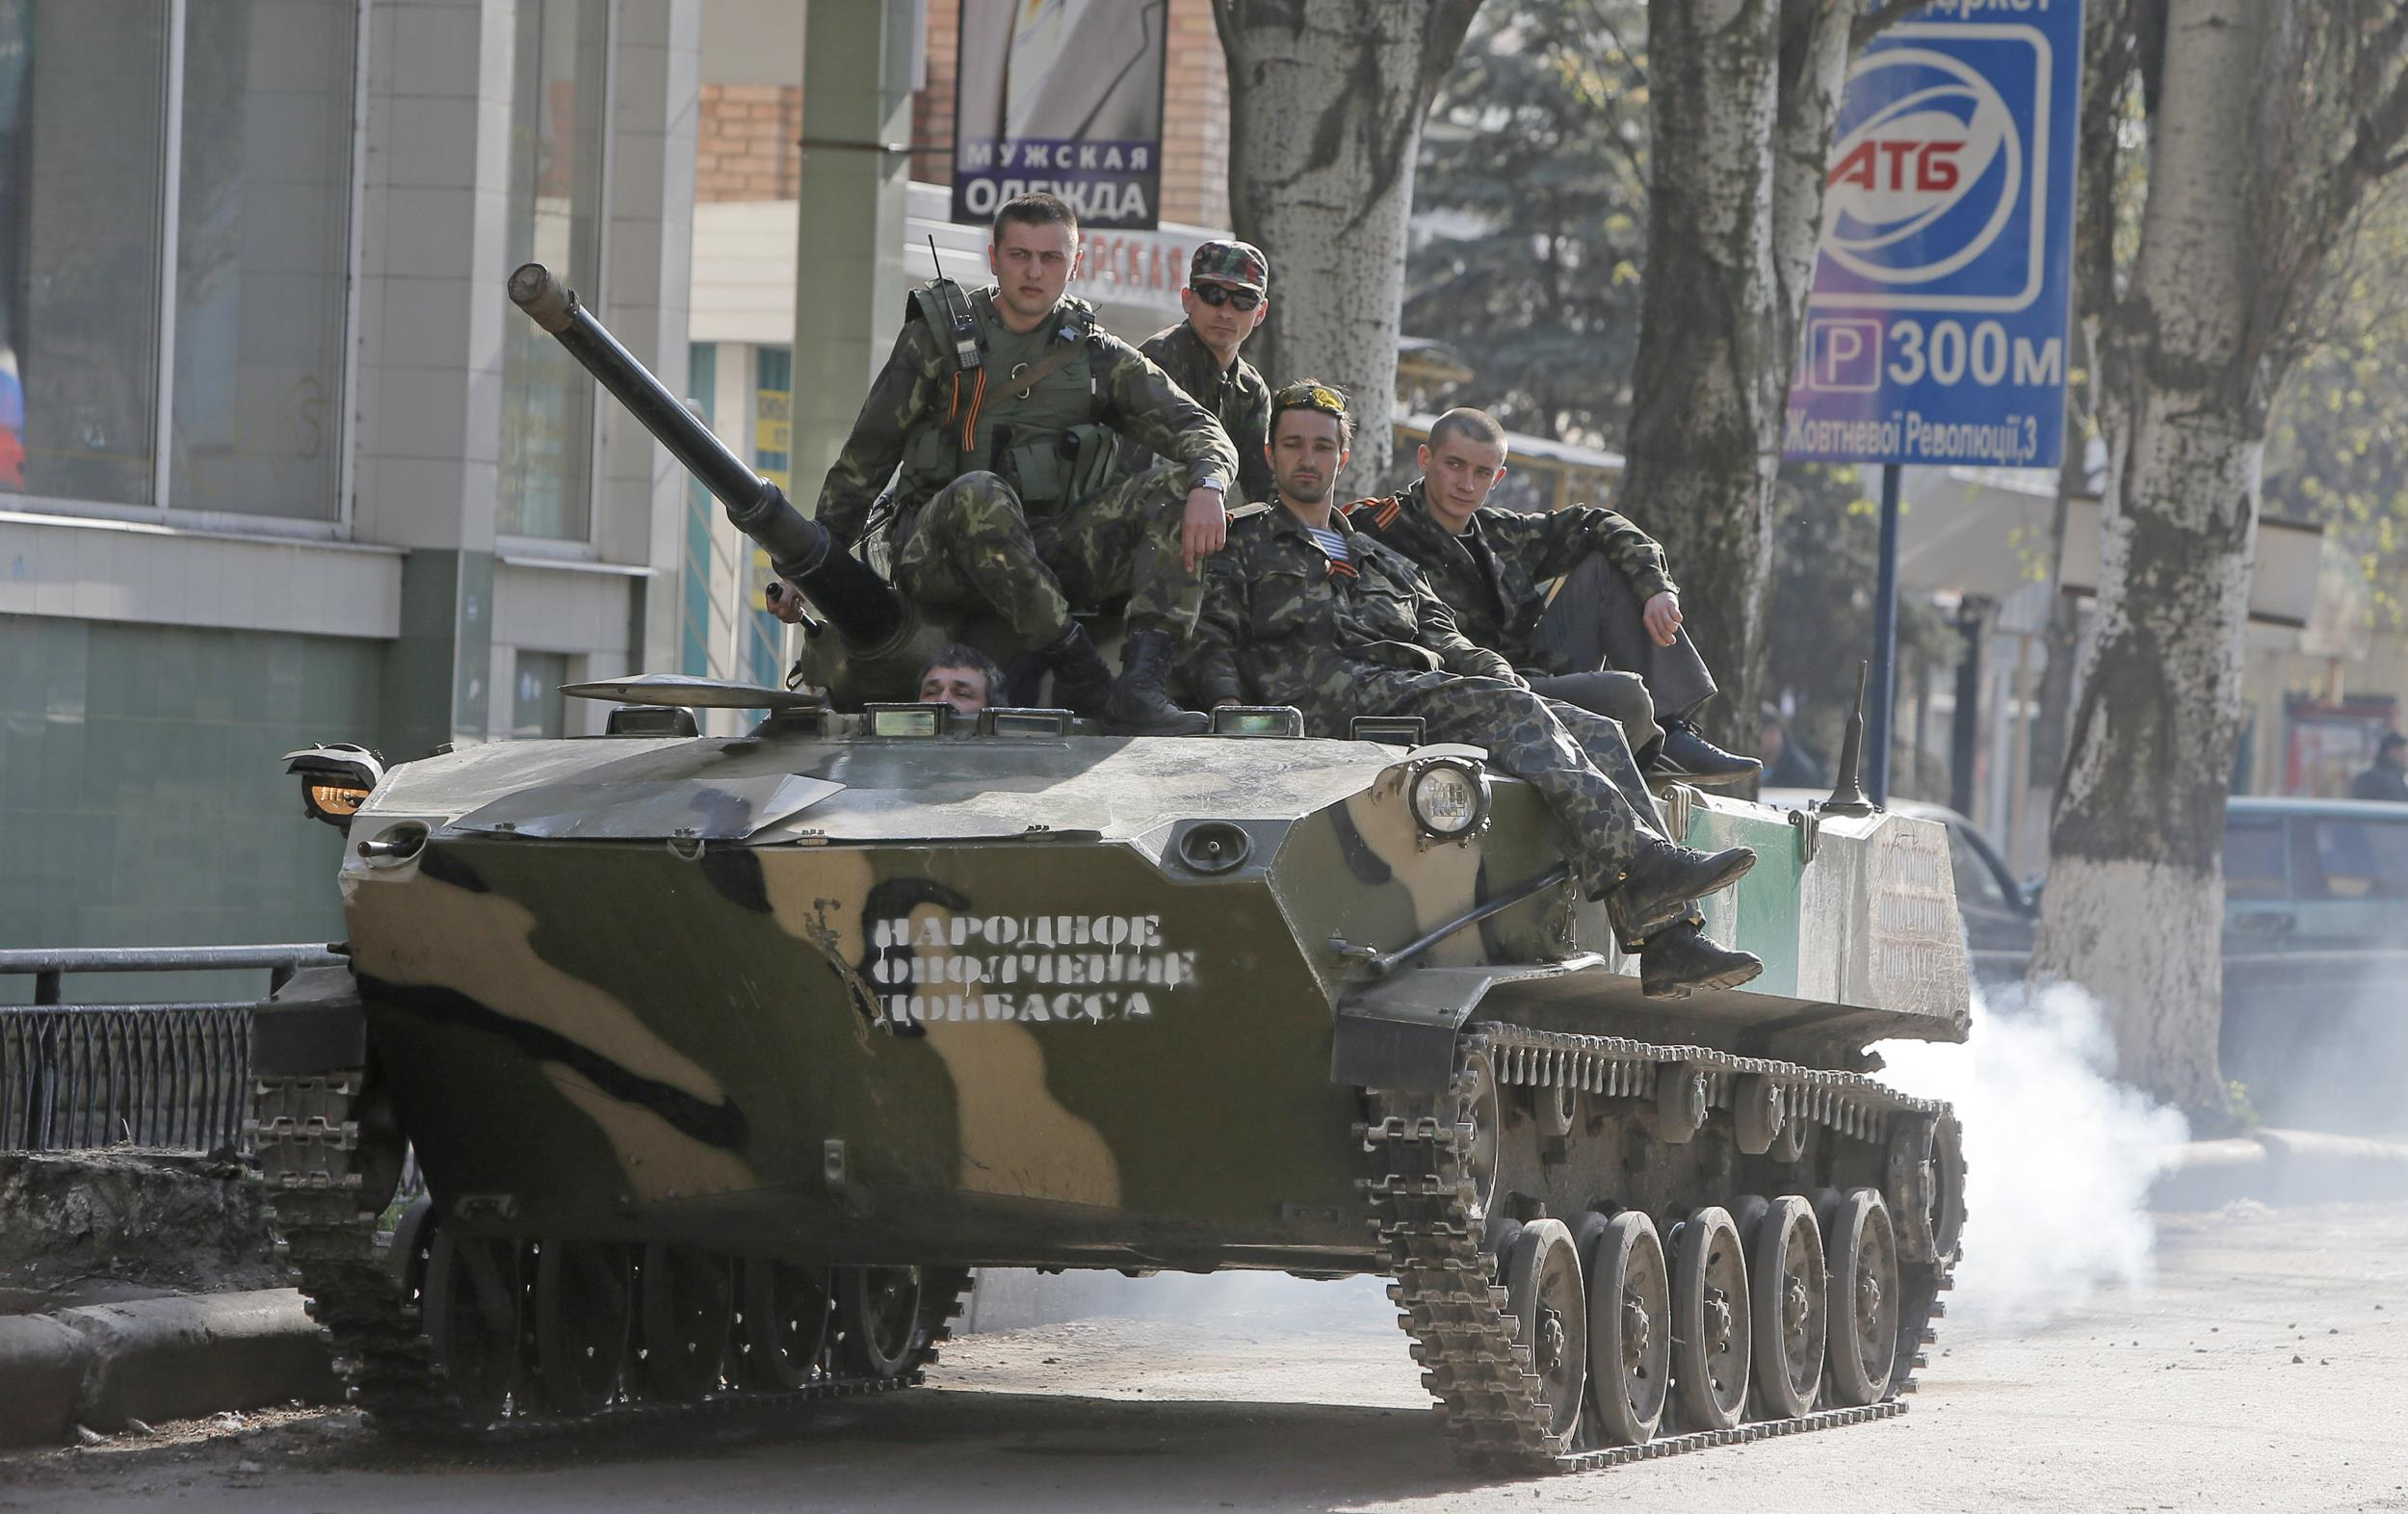 Image: A combat vehicle with pro-Russian gunman on top runs through downtown Slovyansk, eastern Ukraine, on Friday.